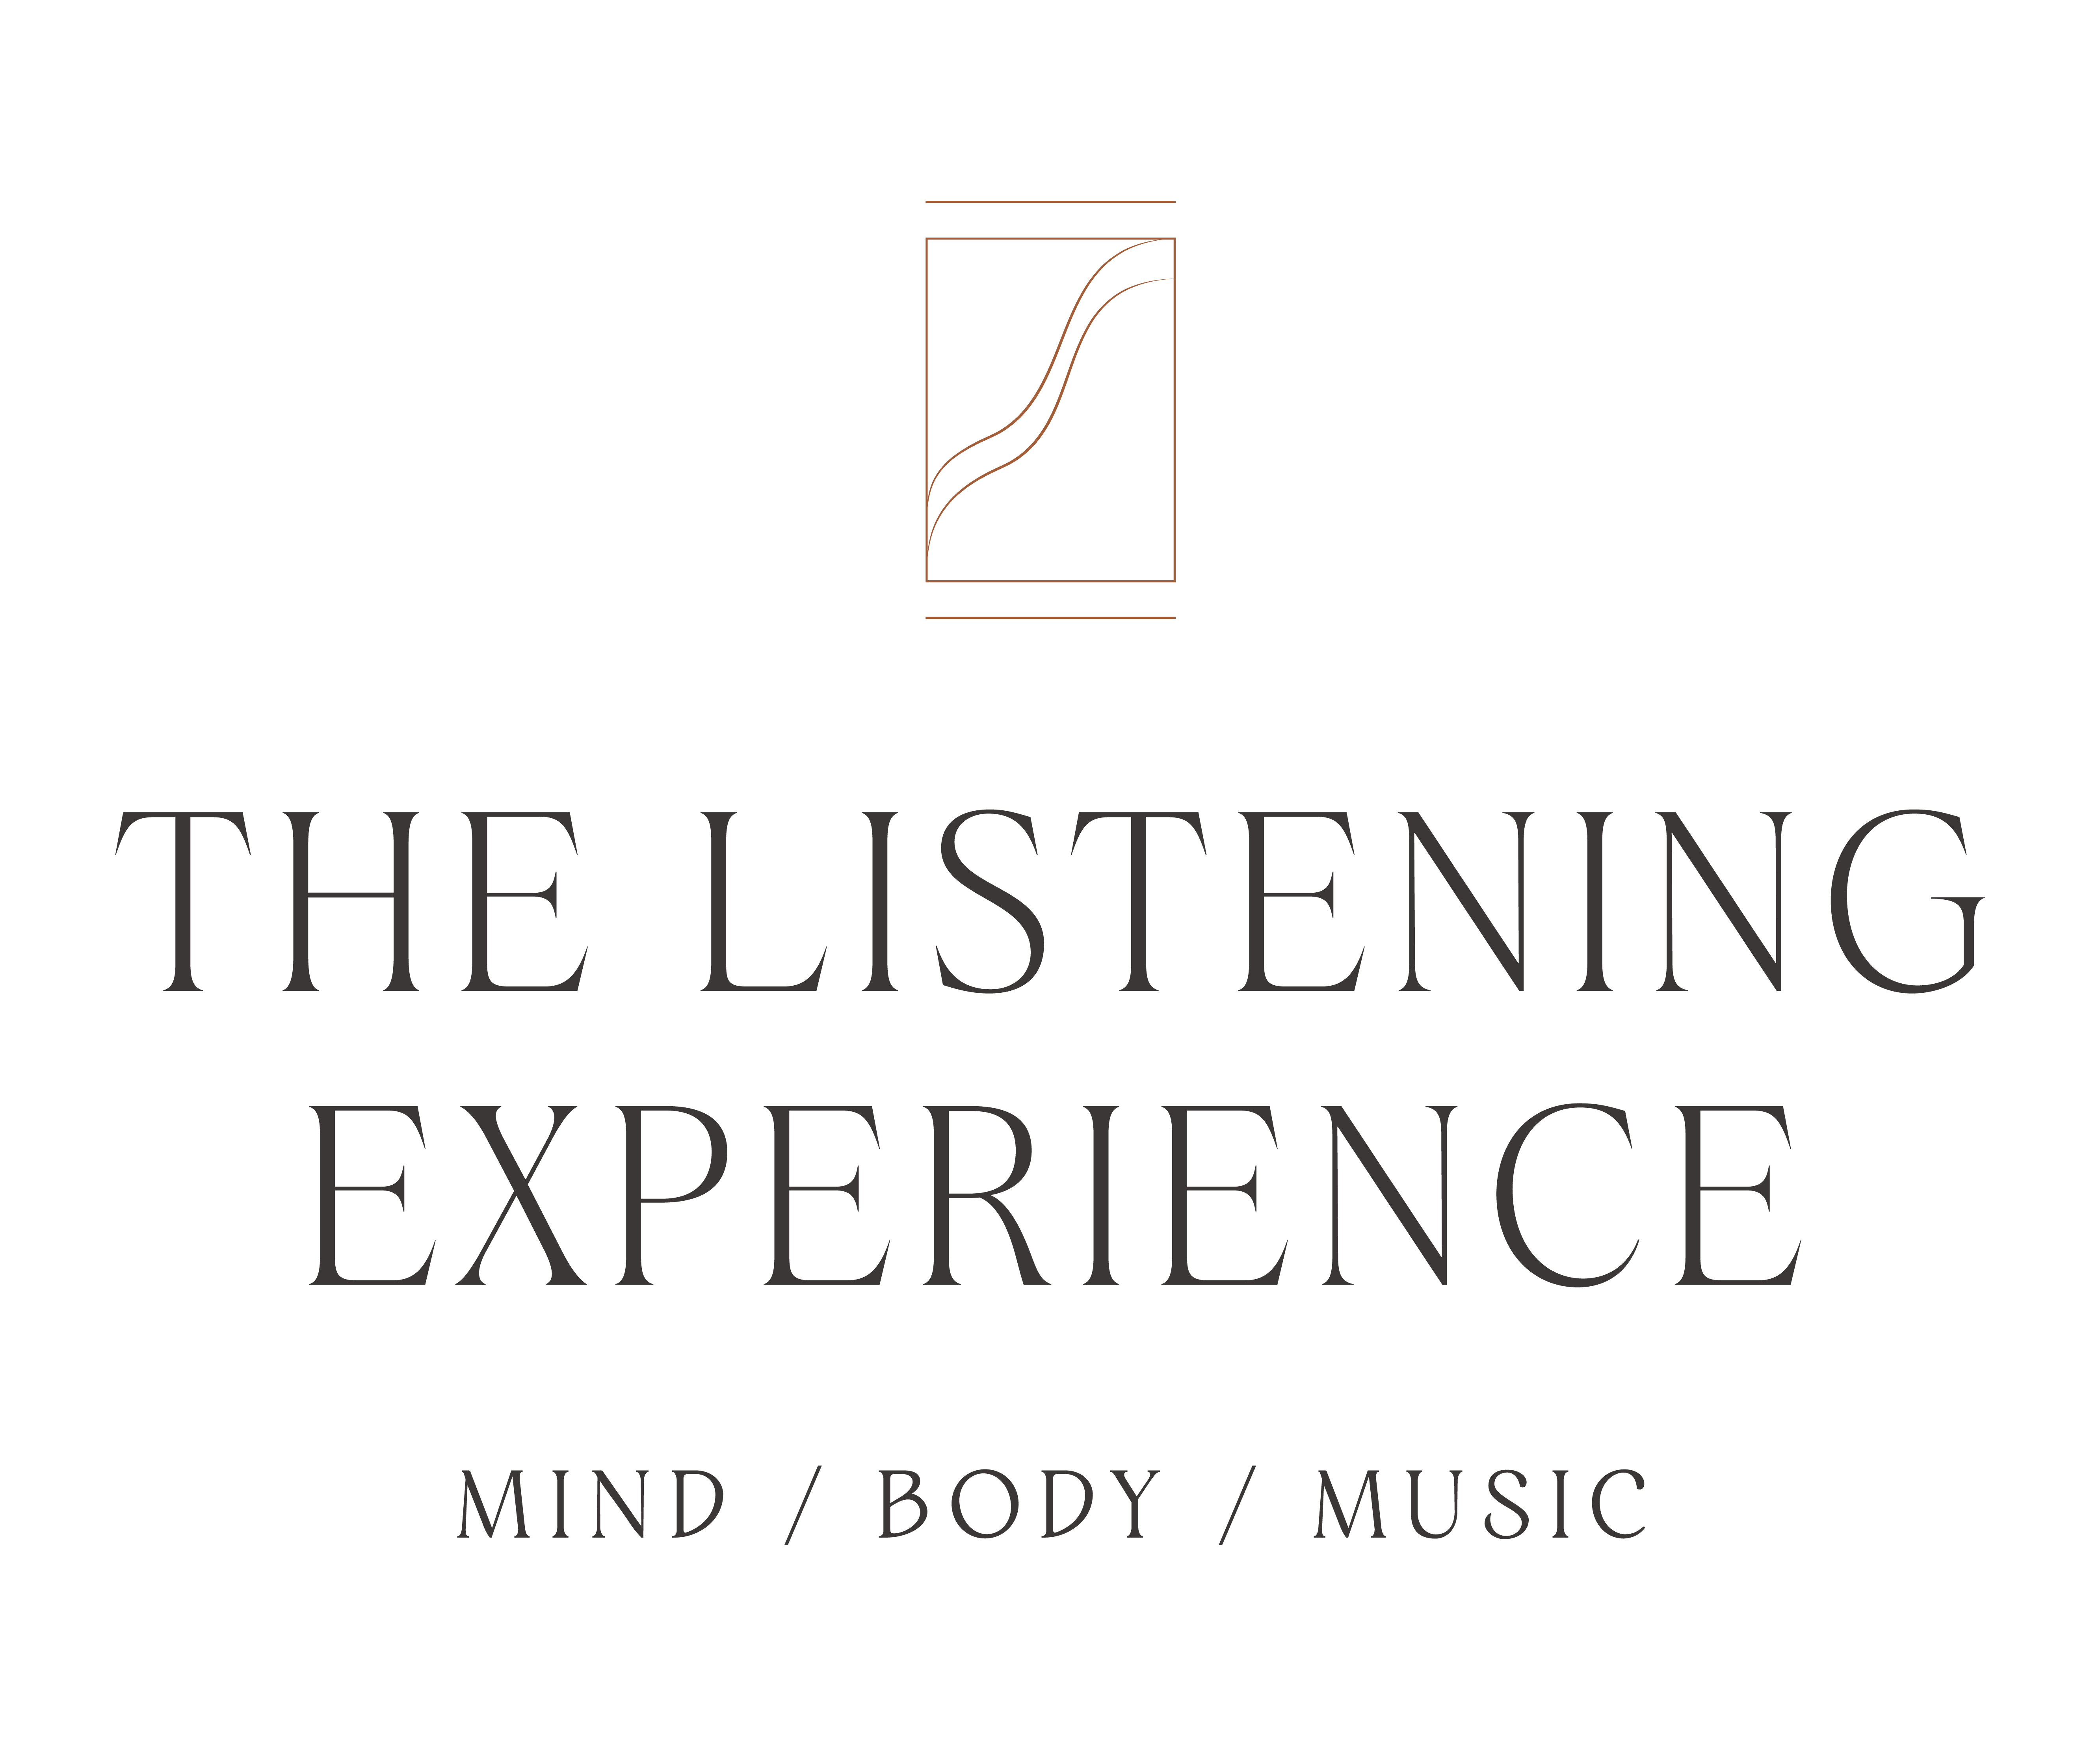 The listening experience